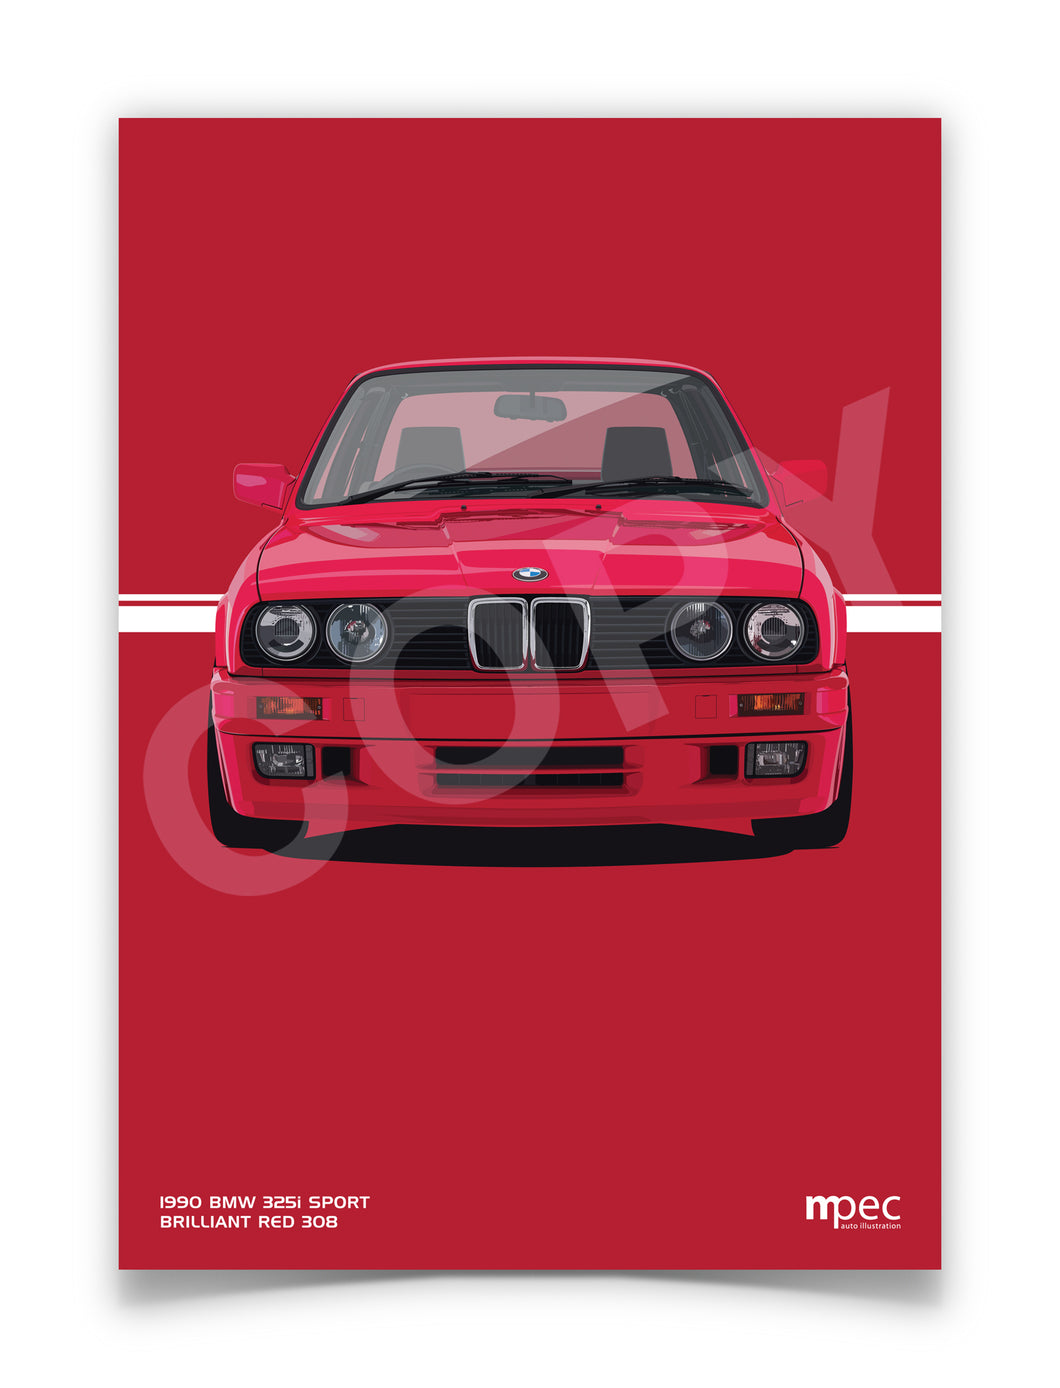 Print of 1990 BMW E30 325i Sport in Brilliant Red 308